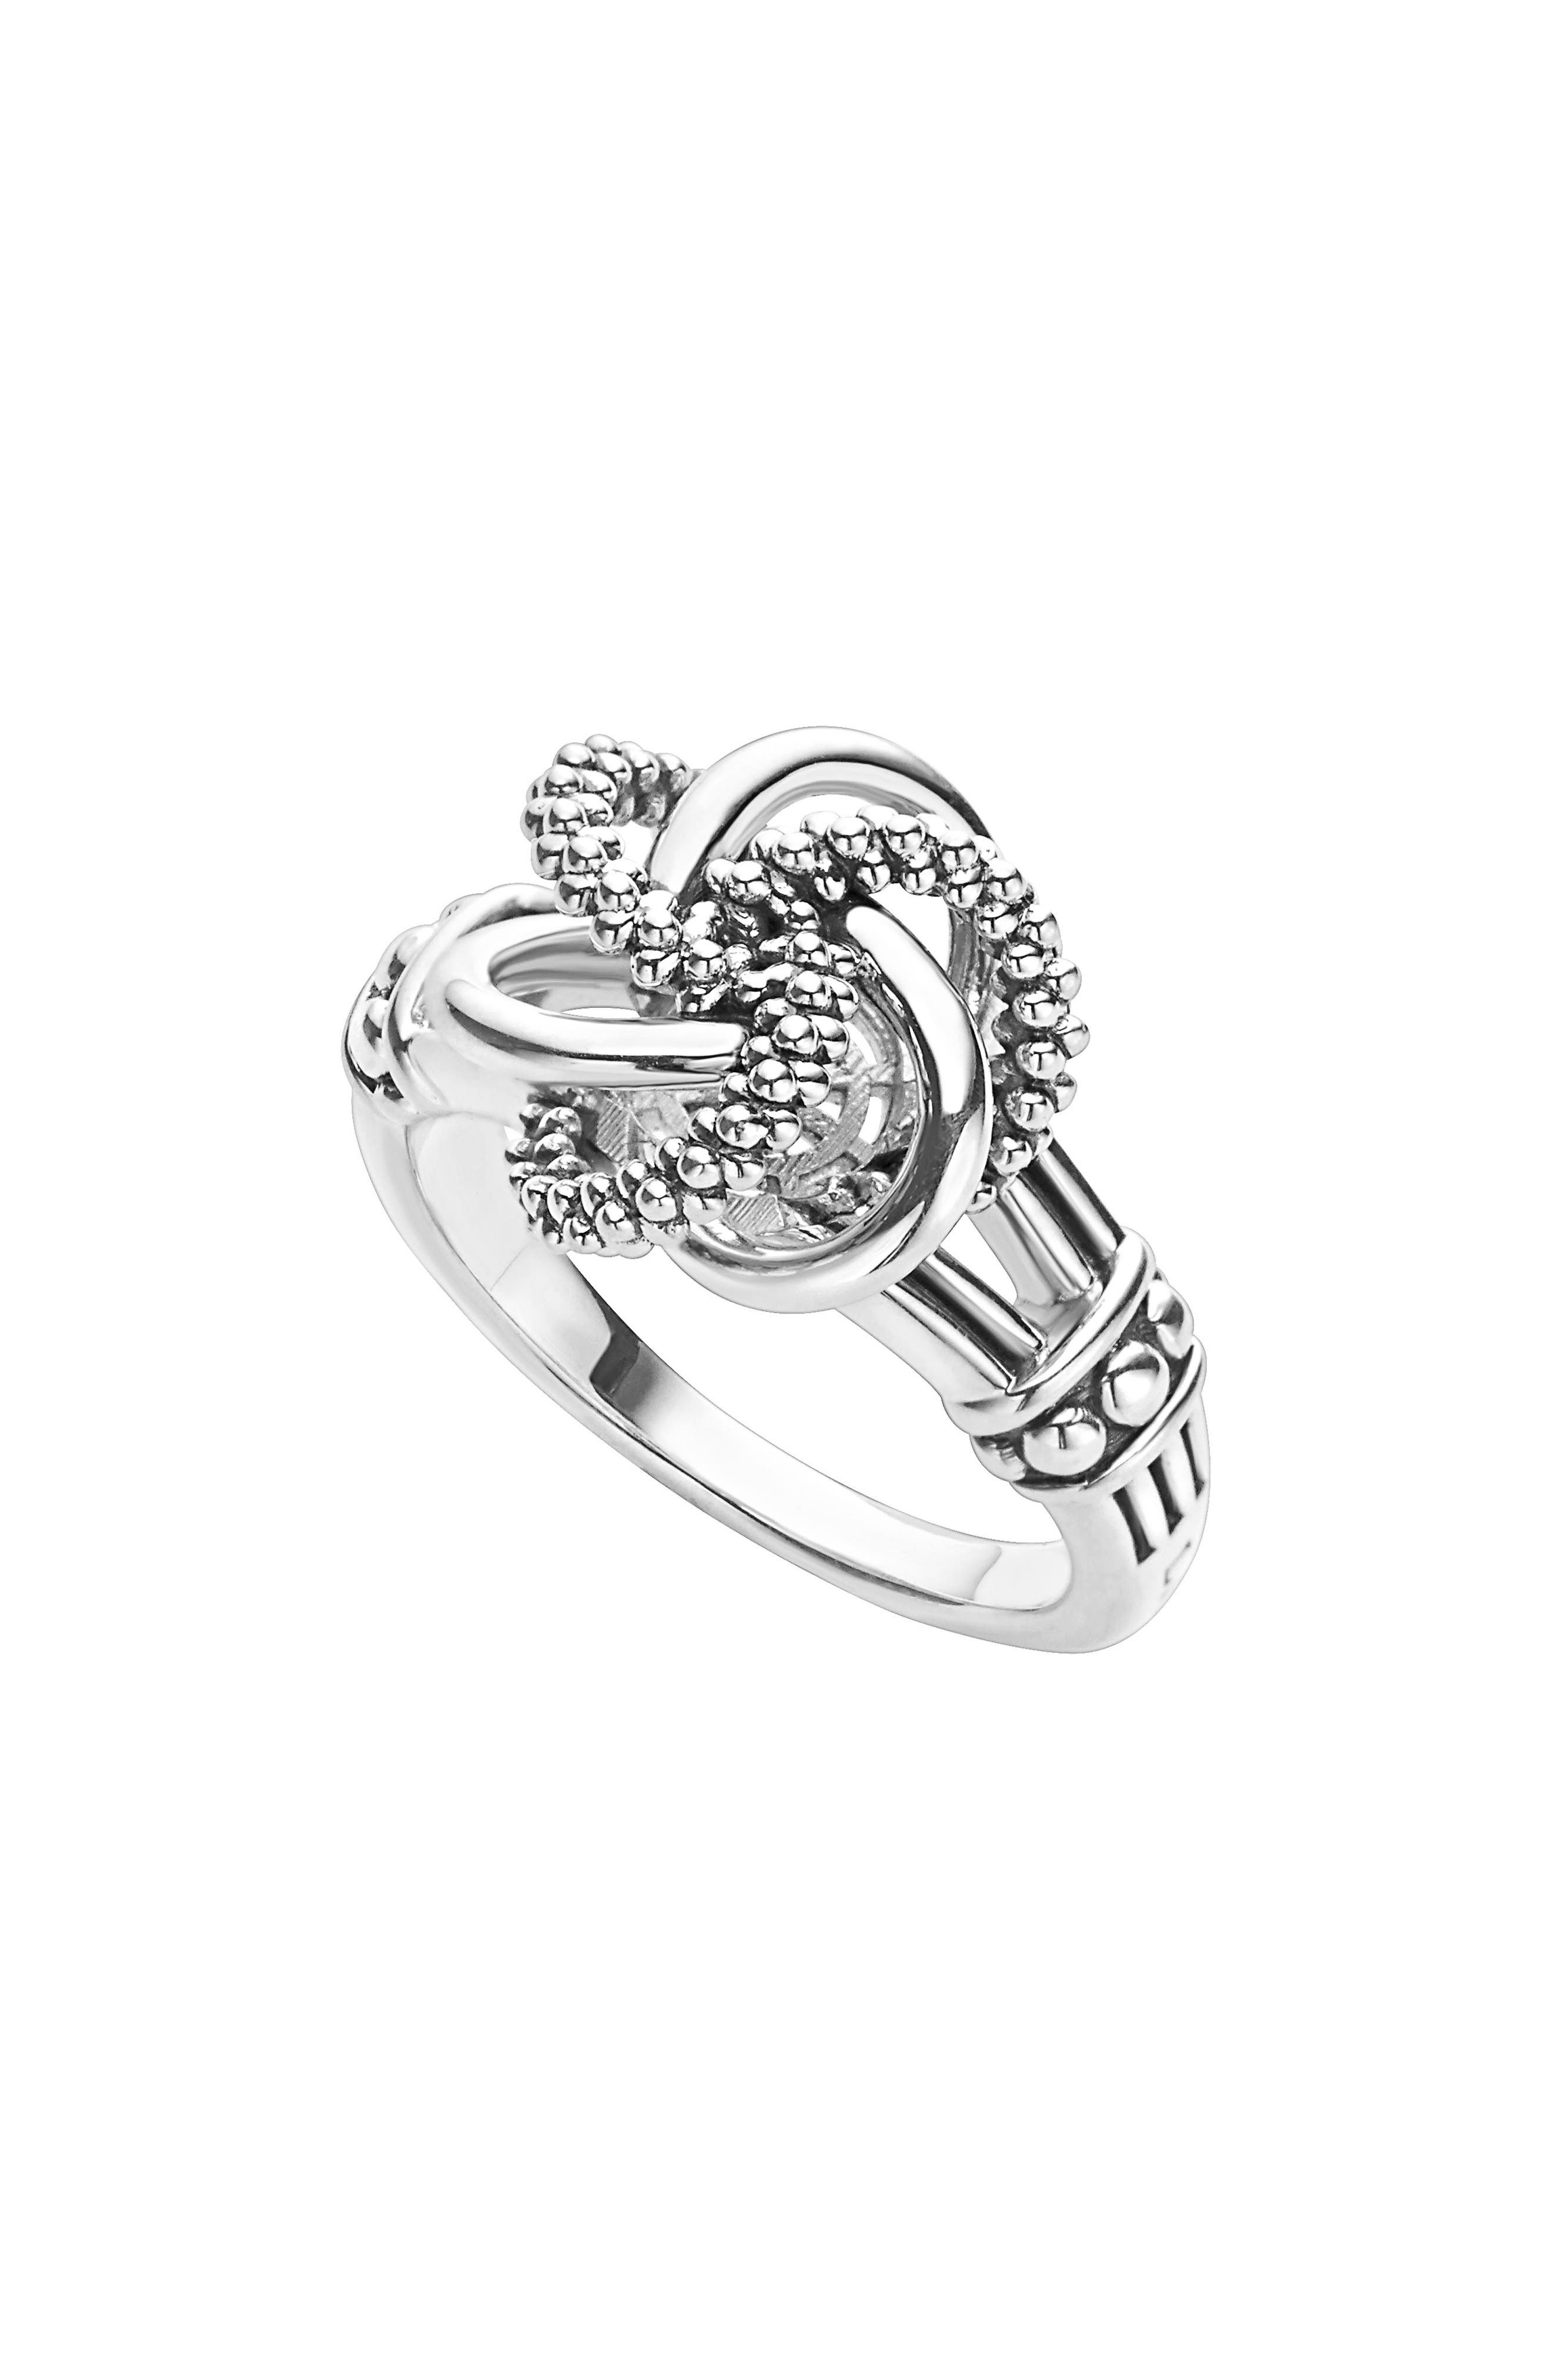 'Love Knot' Ring,                             Main thumbnail 1, color,                             STERLING SILVER